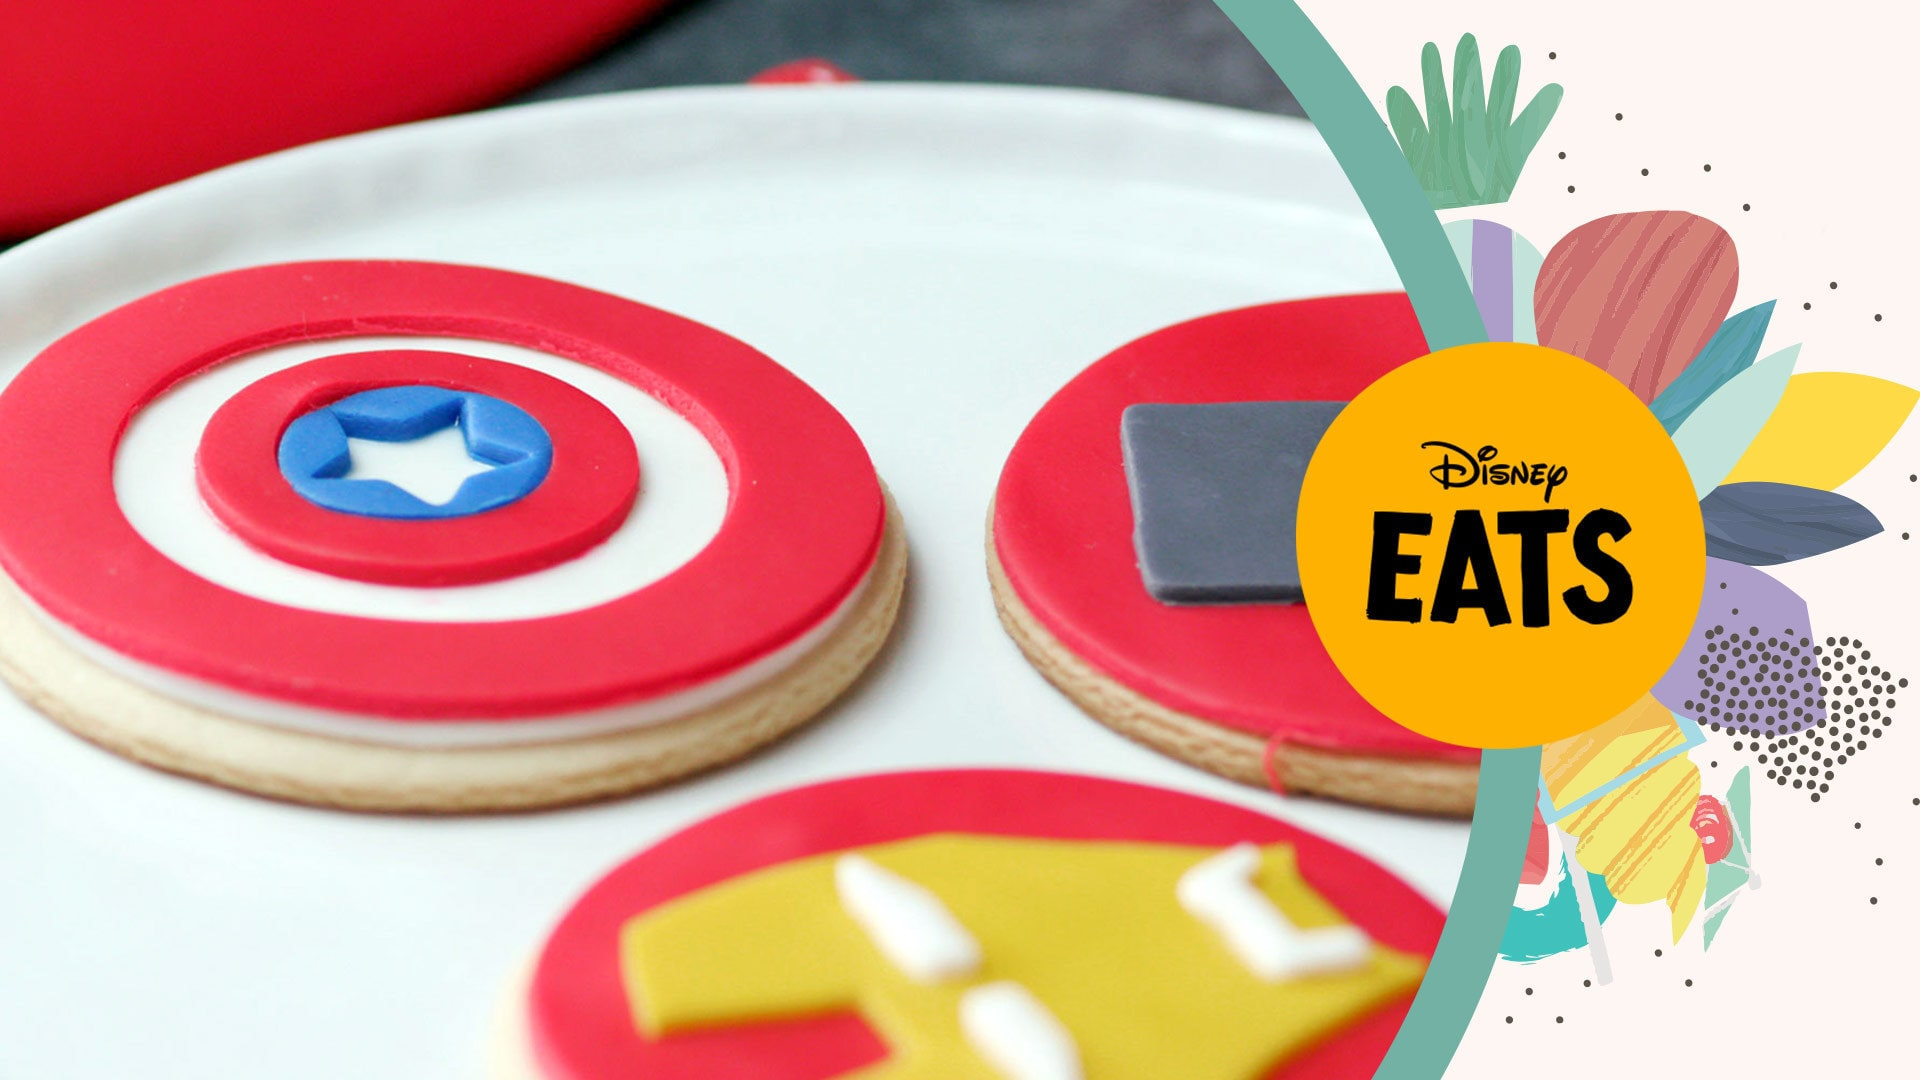 Avengers Cookies | Disney Eats